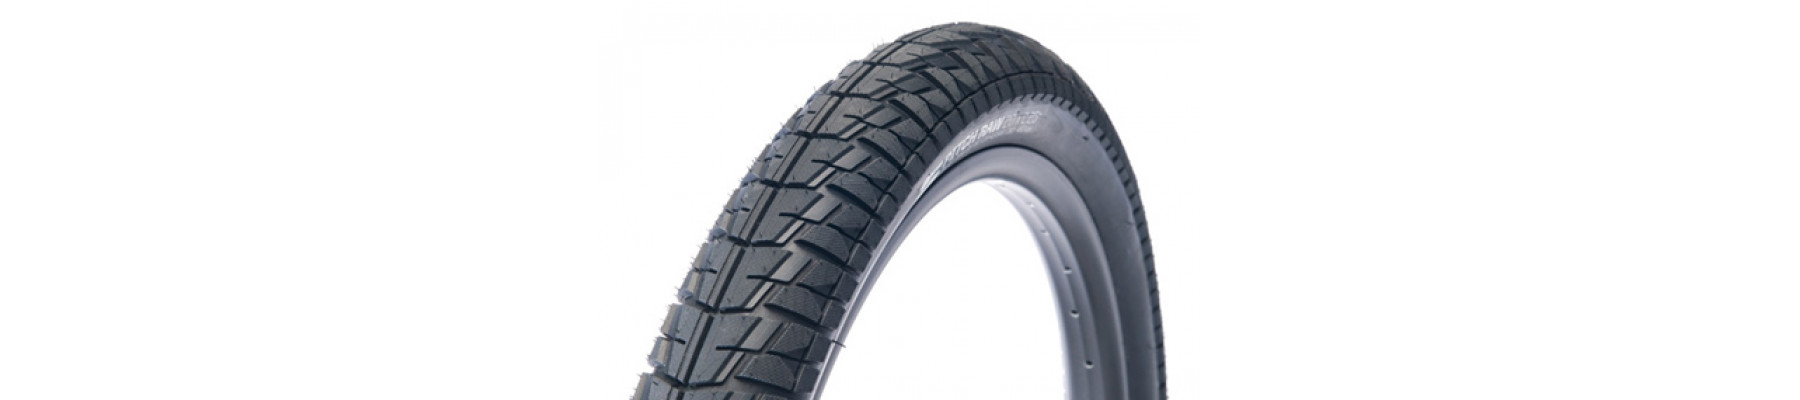 Salt Pitch raw tire Black 2.25